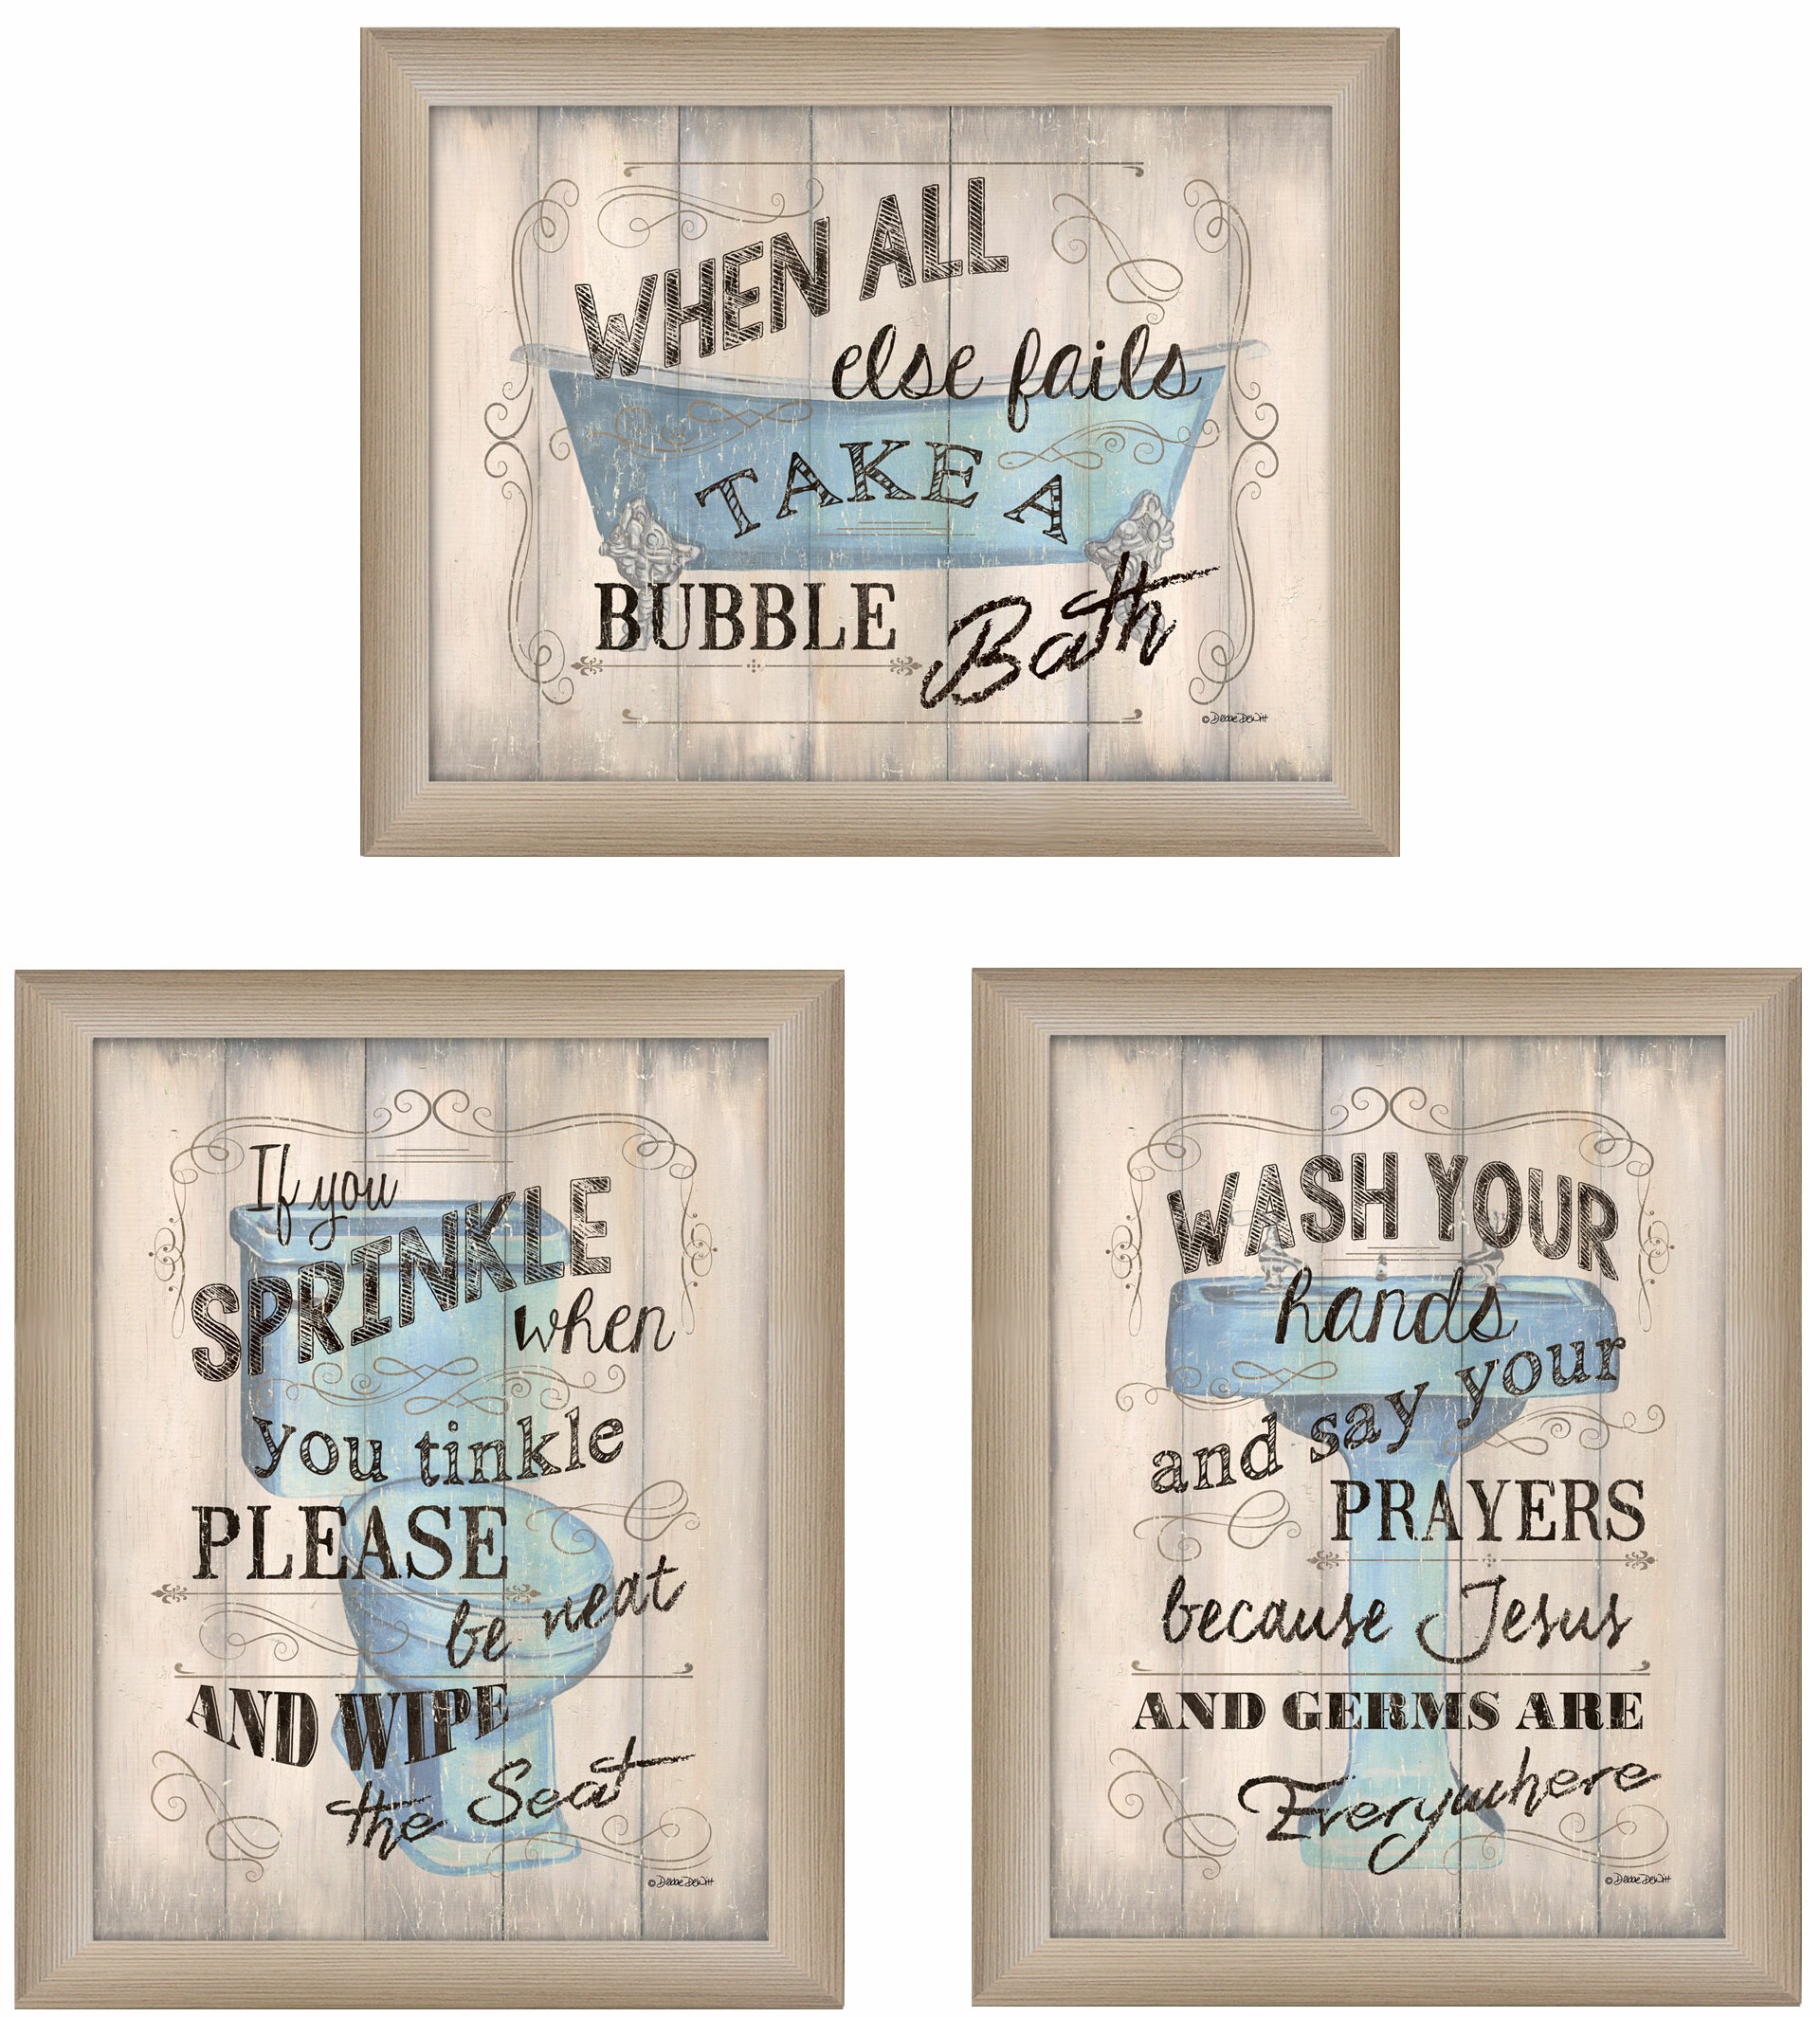 Winston Porter Bathroom Humor Framed Panoramic Textual Art Print Set On Canvas Reviews Wayfair